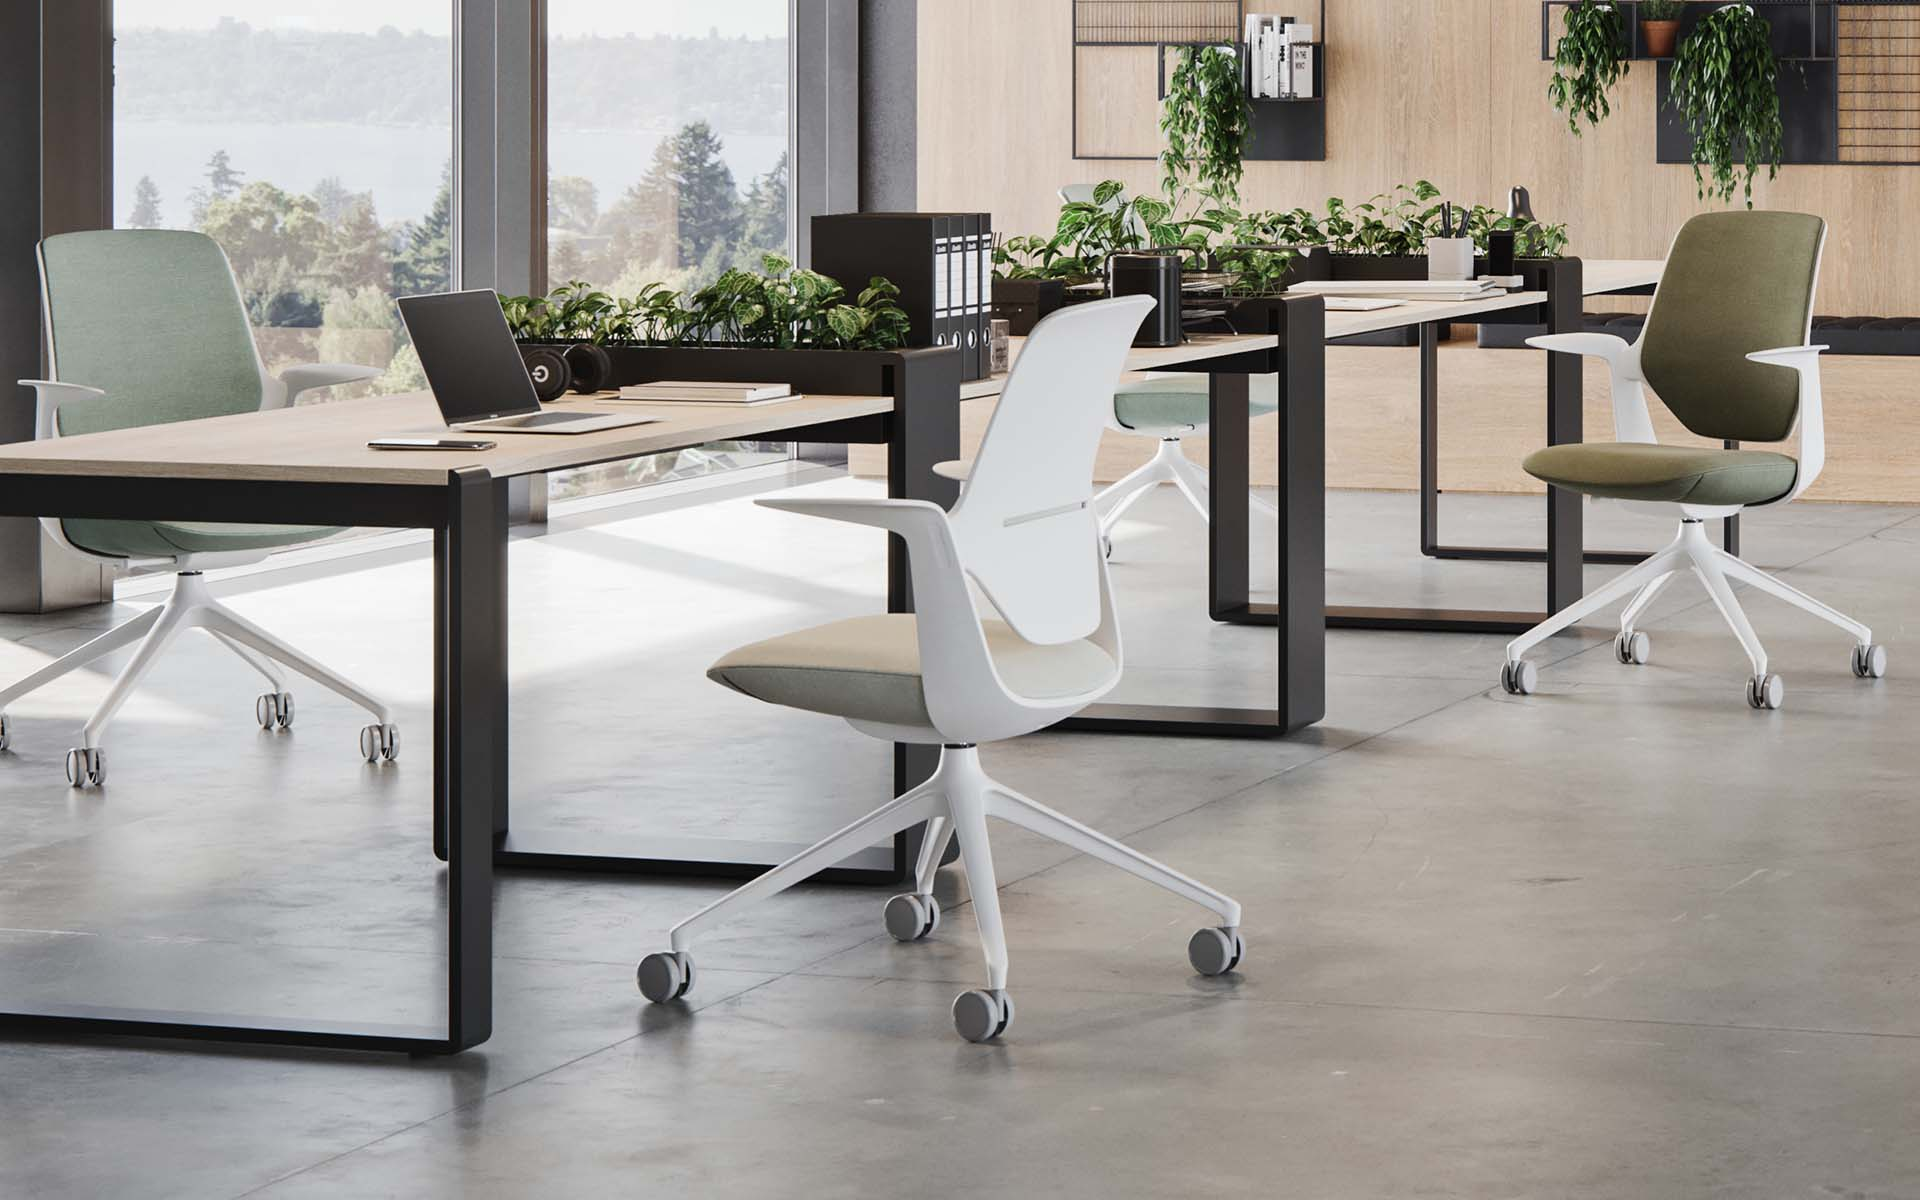 Three Profim Trillo Pro office chairs by ITO Design in sage, beige and moss at desks